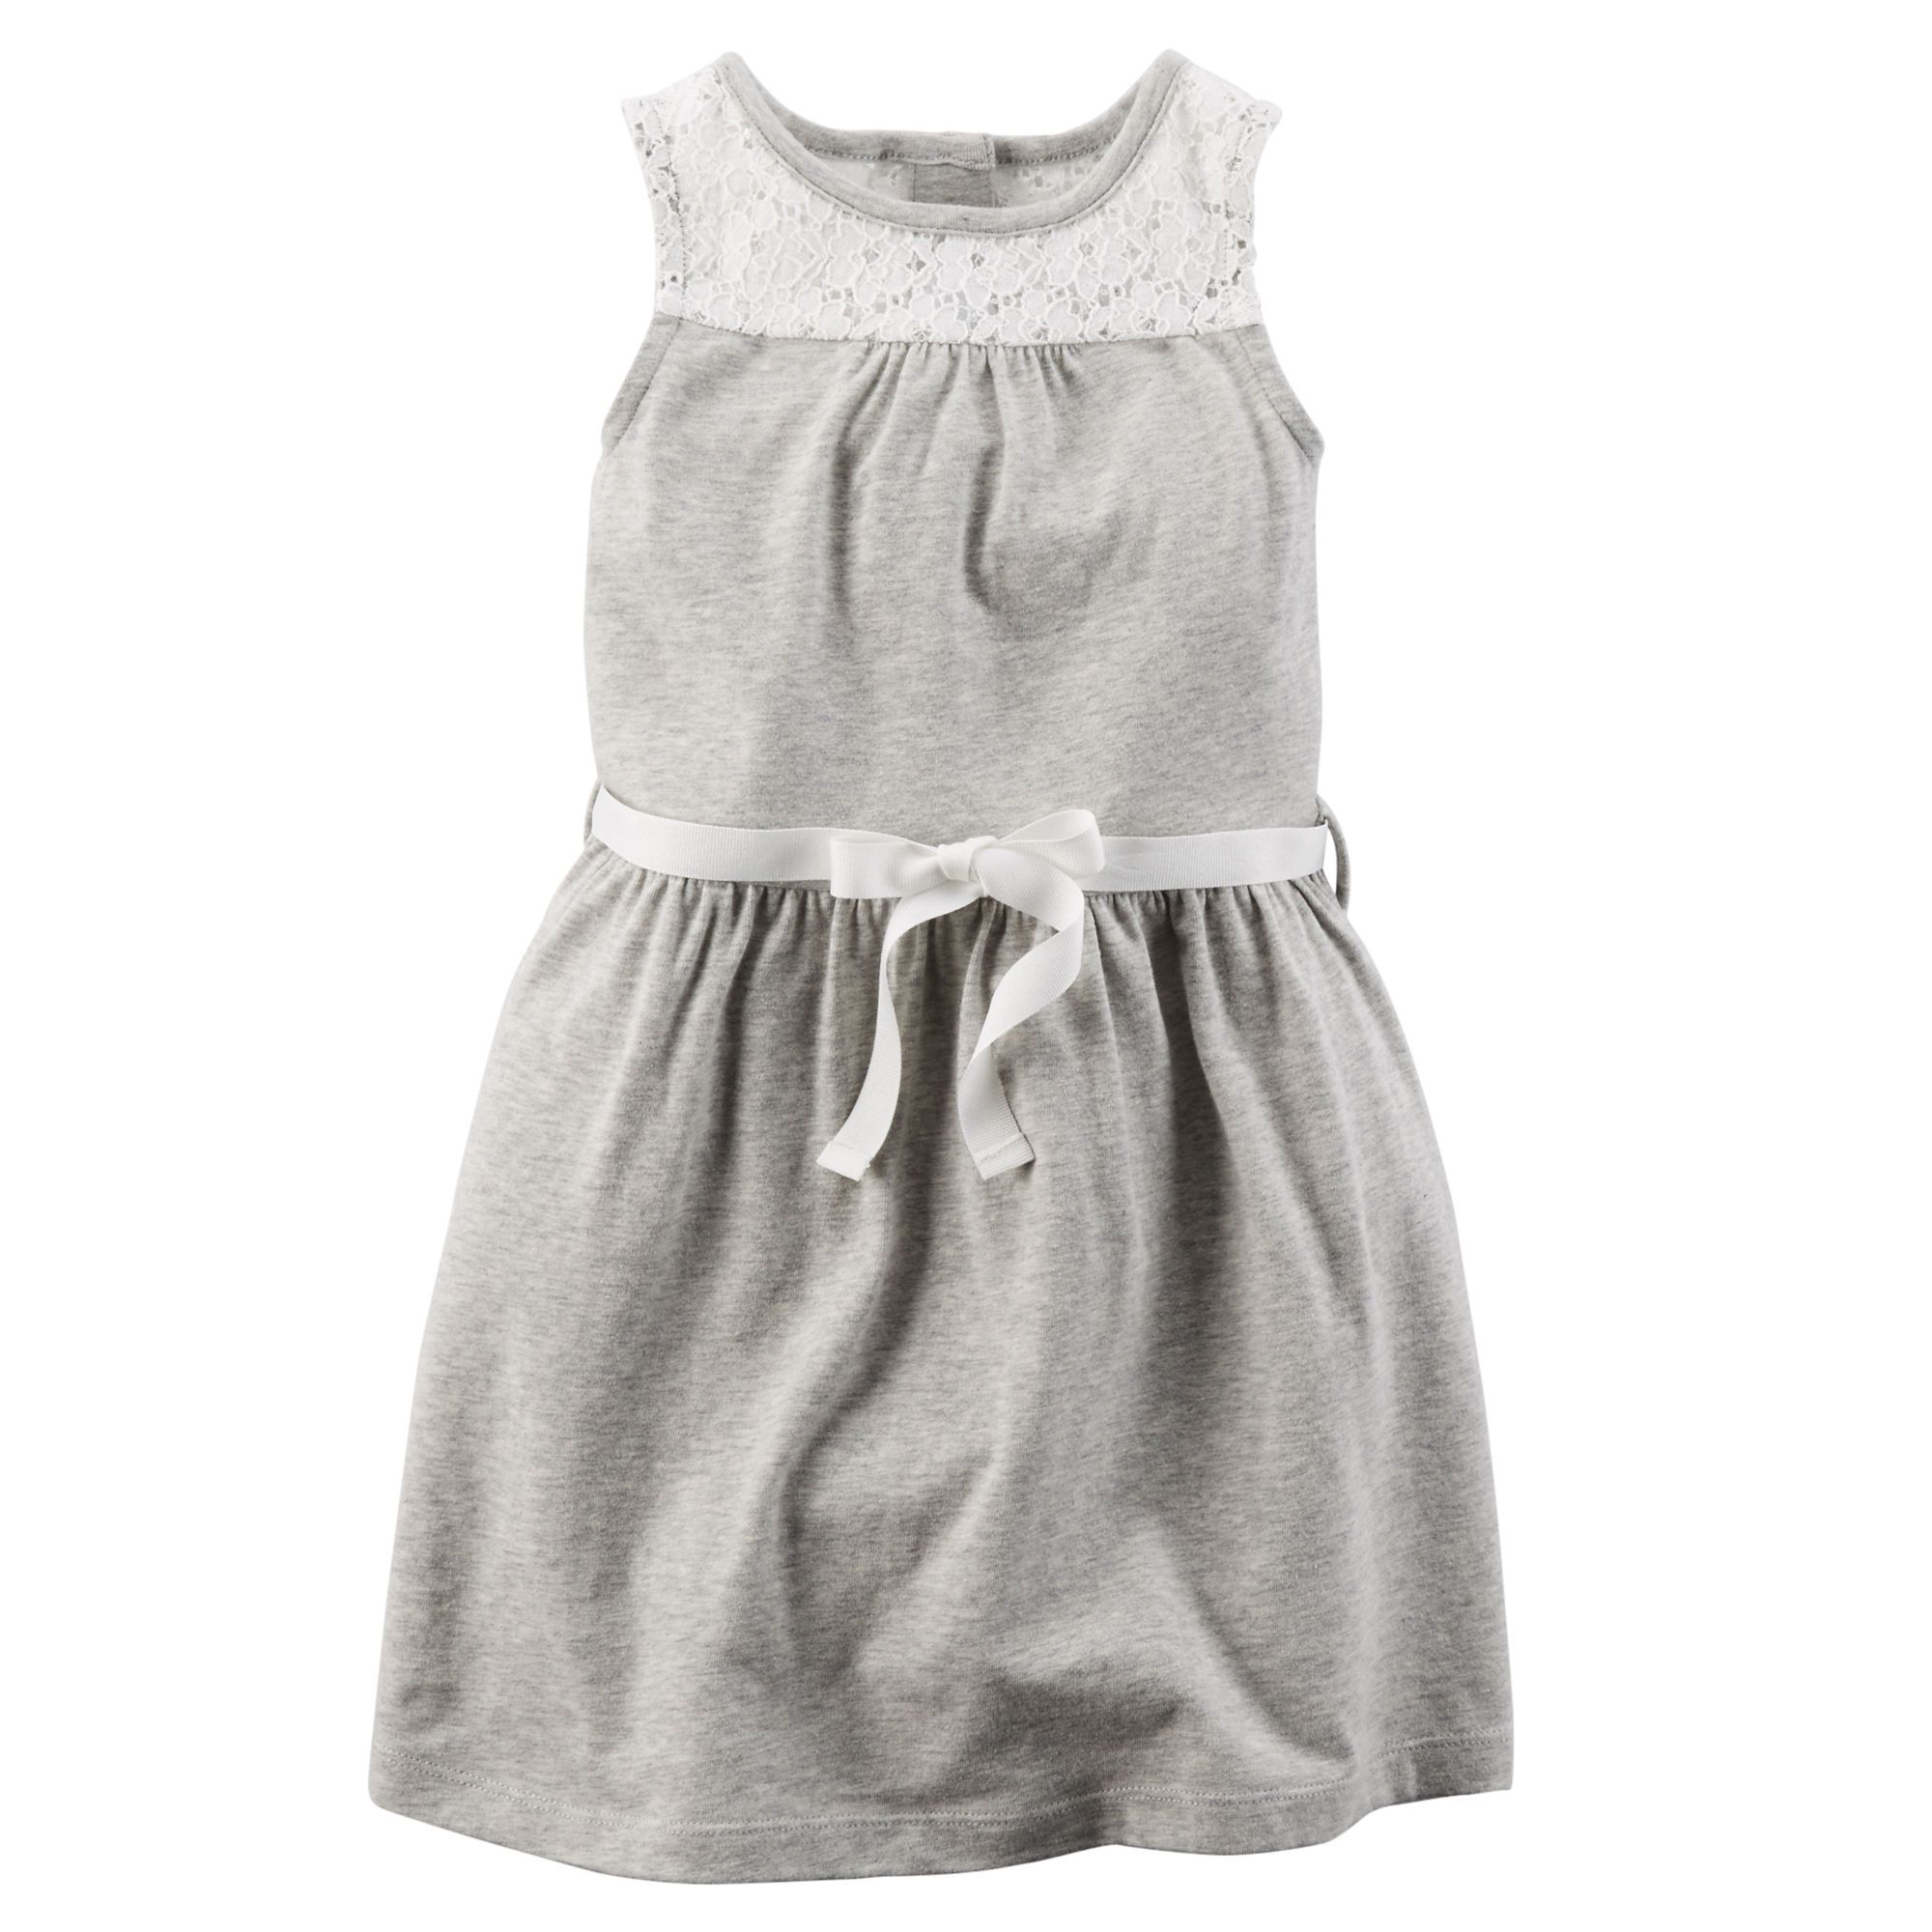 Jersey dress babies clothes toddler girls and babies